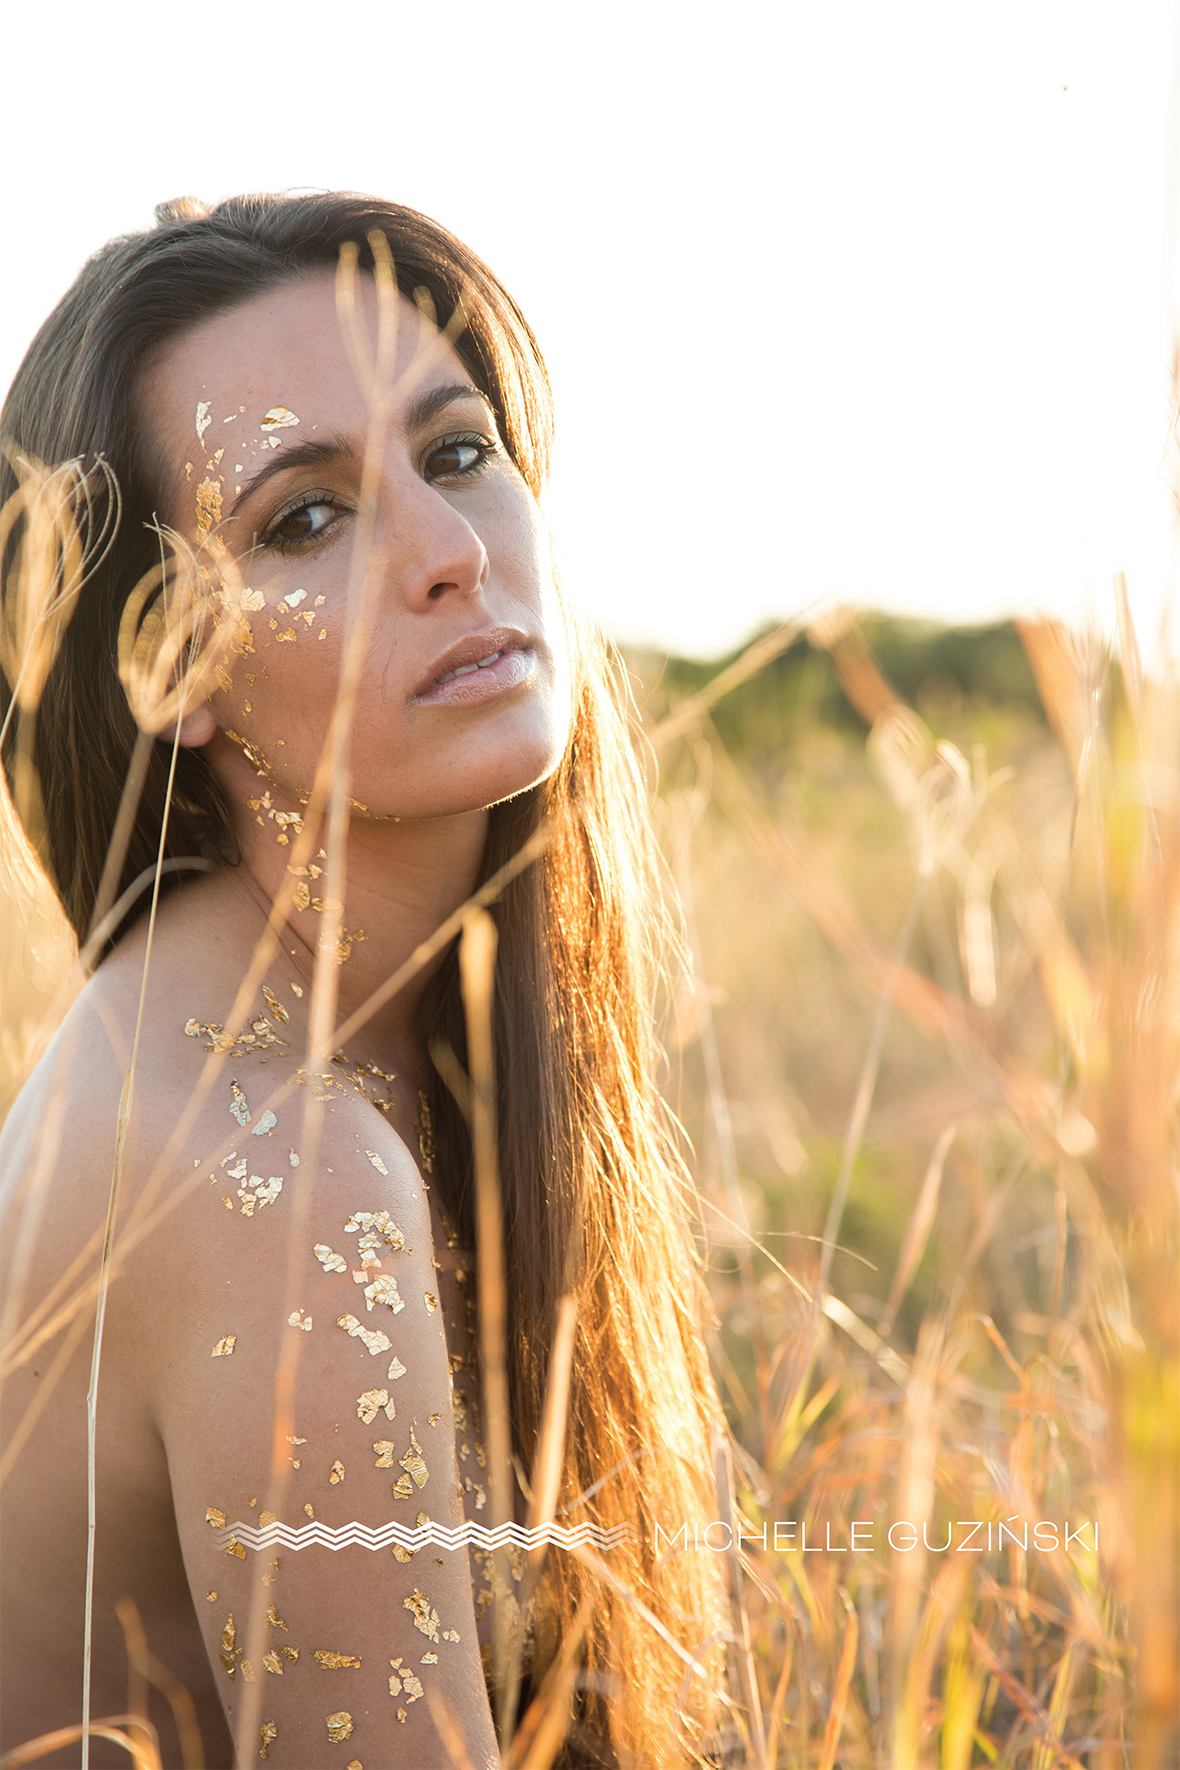 Michelle Guzinski Photography | Concept photography | South Africa | East London | Photography |#photography #MichelleGuzinksiPhotography #MichelleGuzinksi #EastLondon #SouthAfrica #conceptphotography #concept #goldleaf #goldenhour #sunlight #gold #intothesun